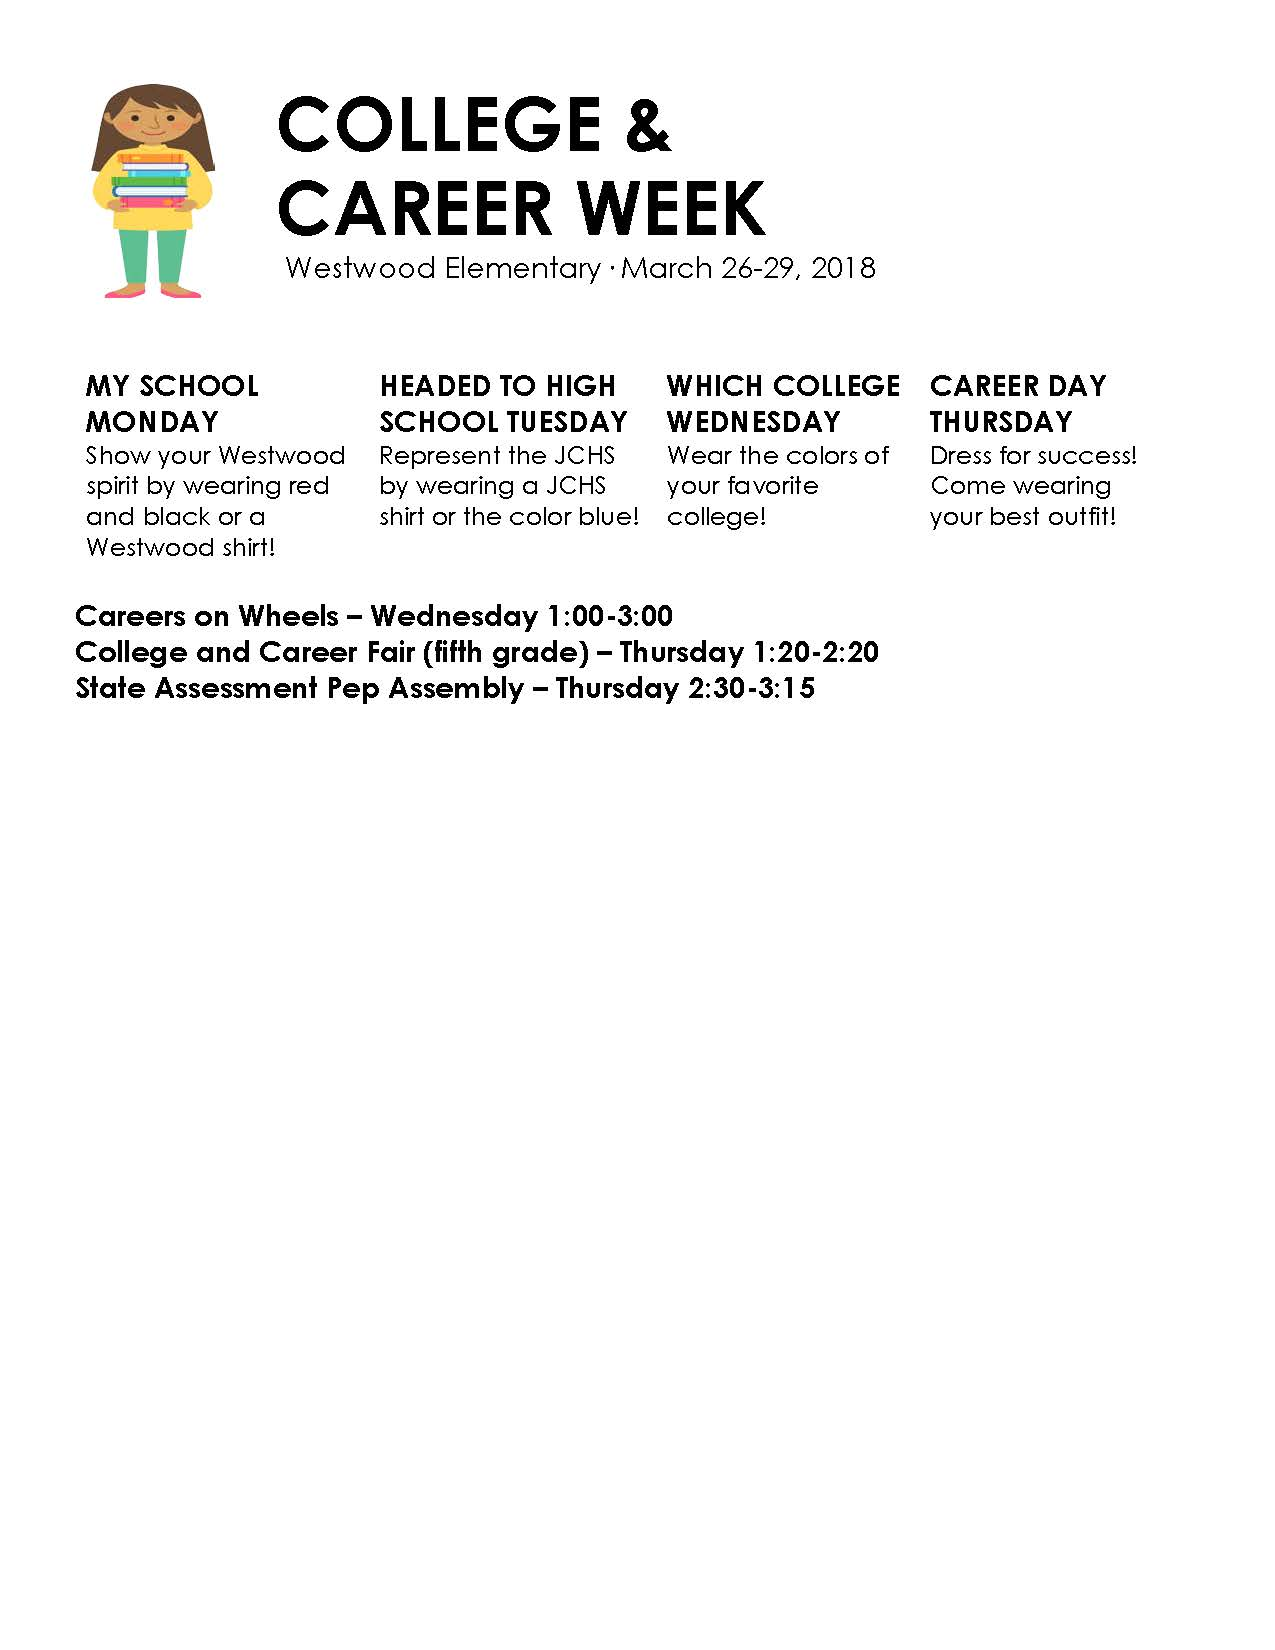 College and Career Week Flyer